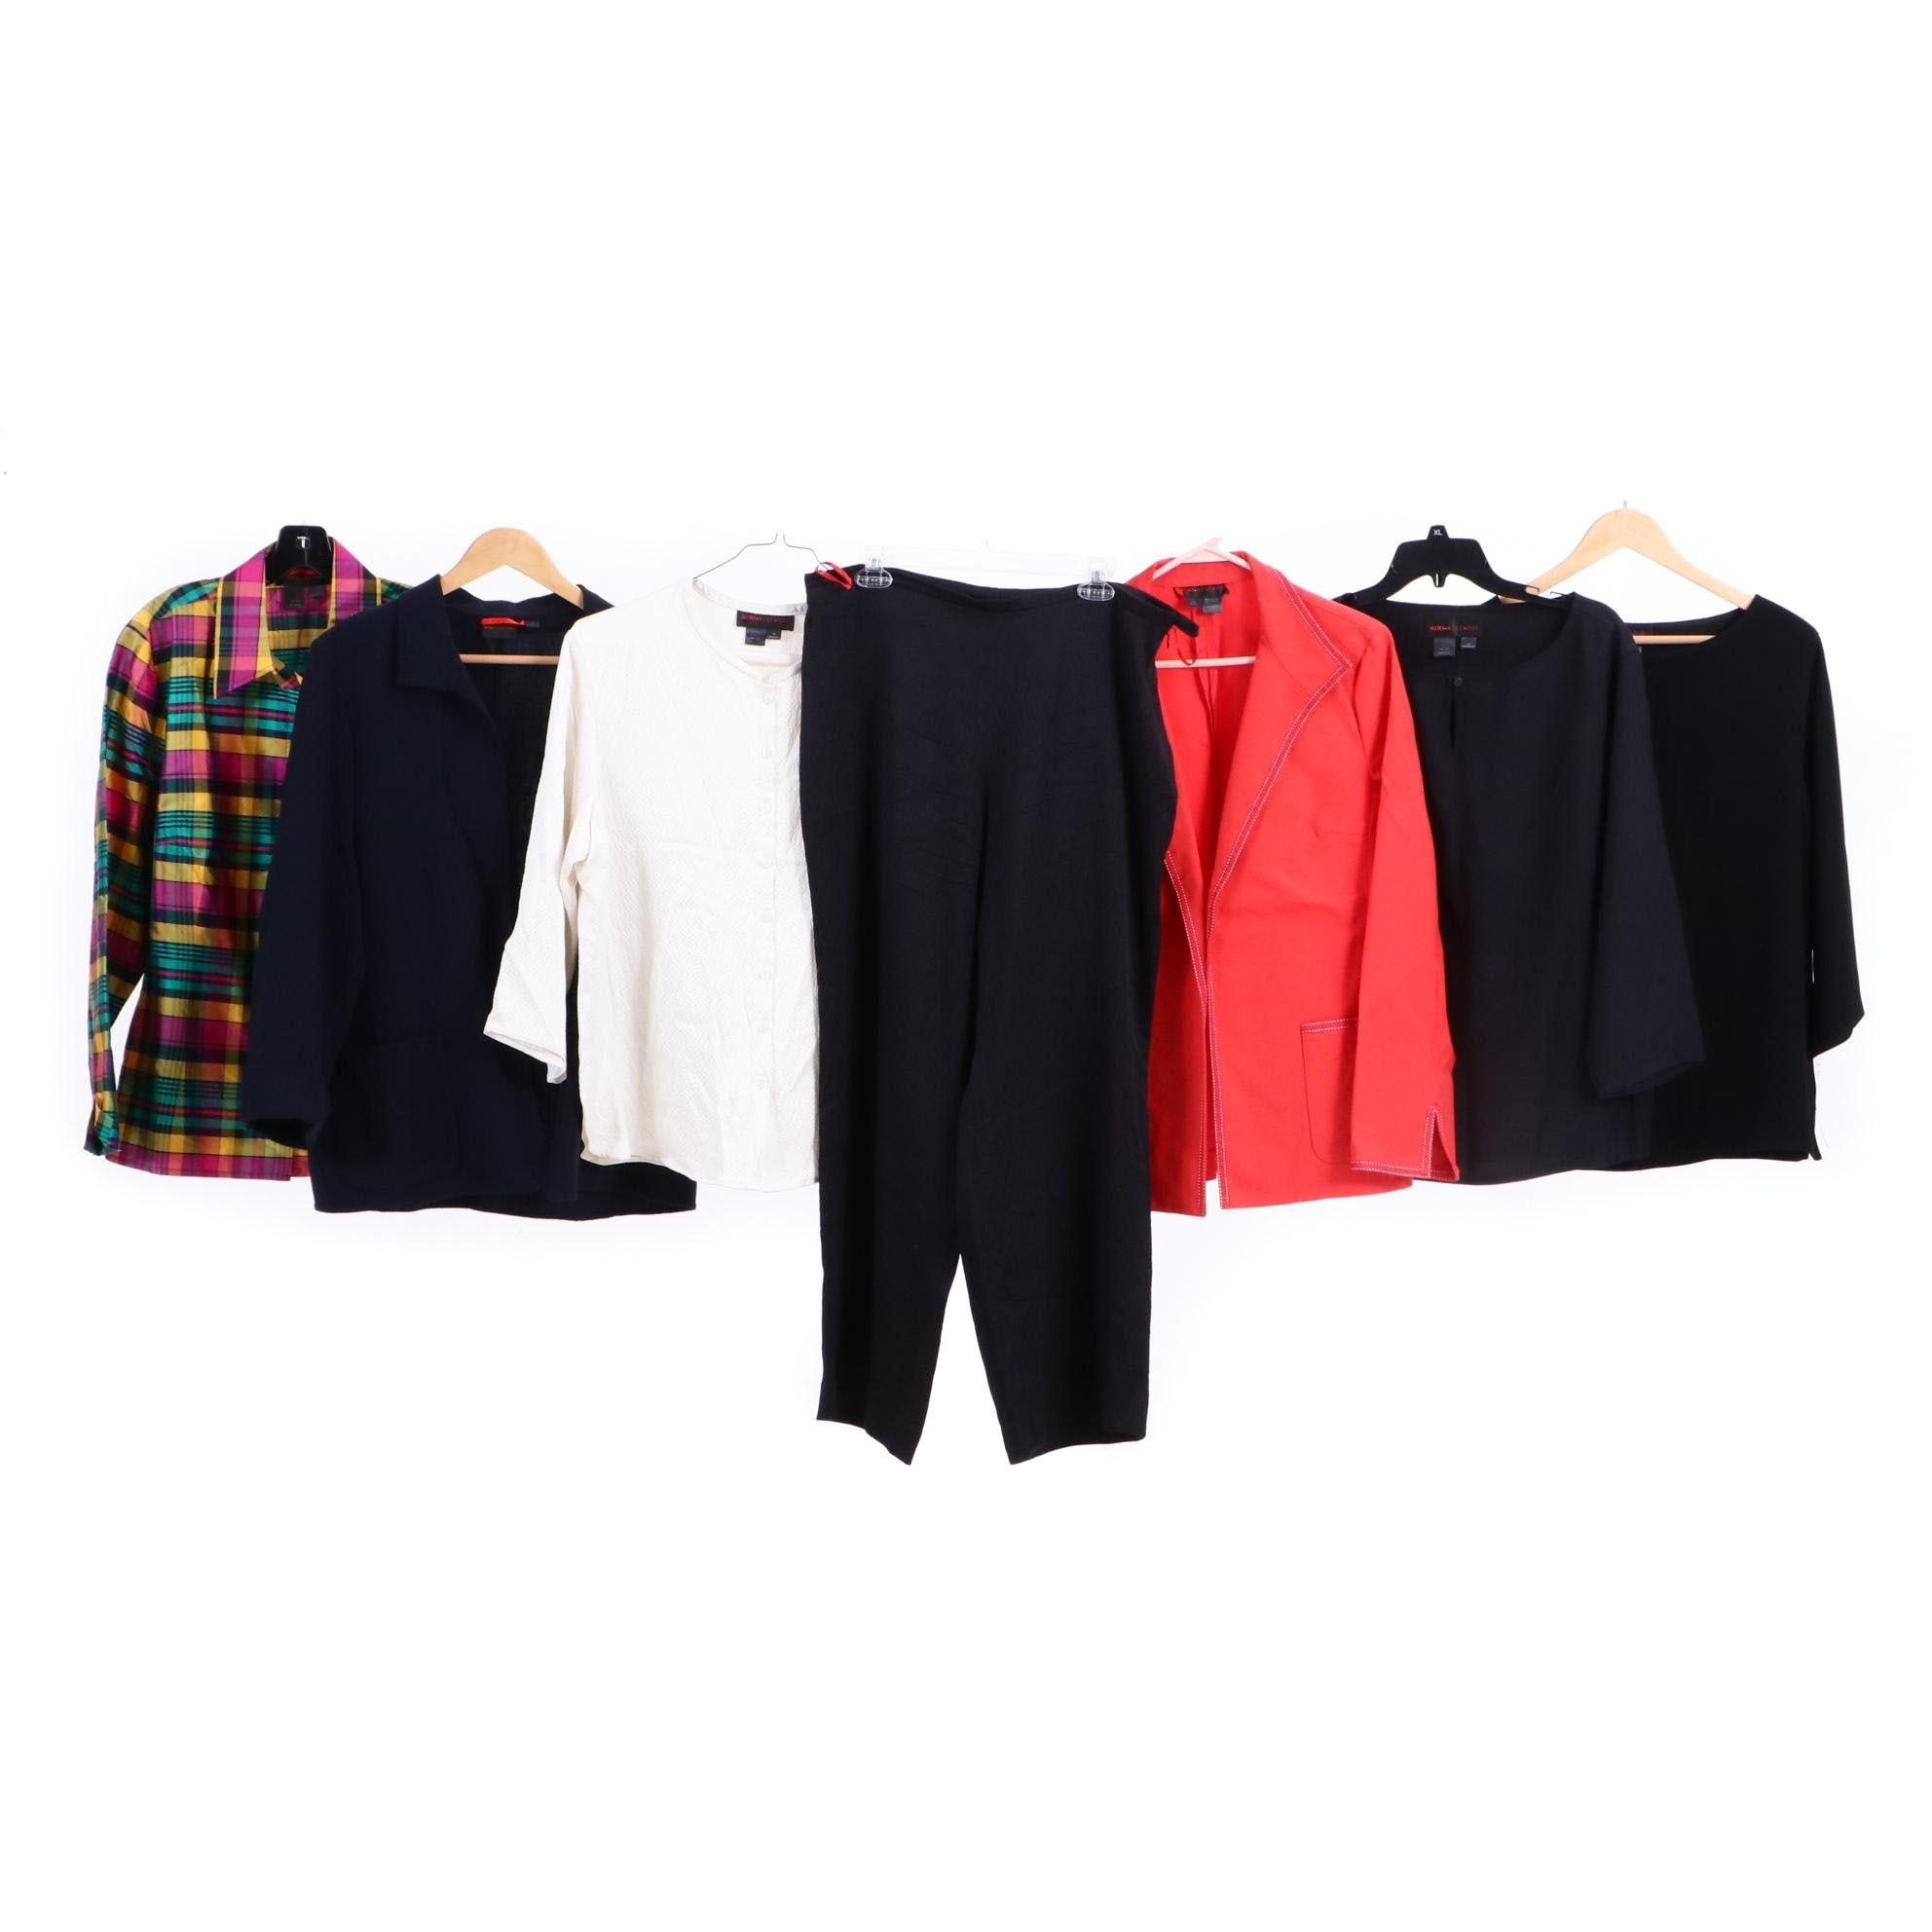 Nina Mclemore Shirts, Jackets and Pants